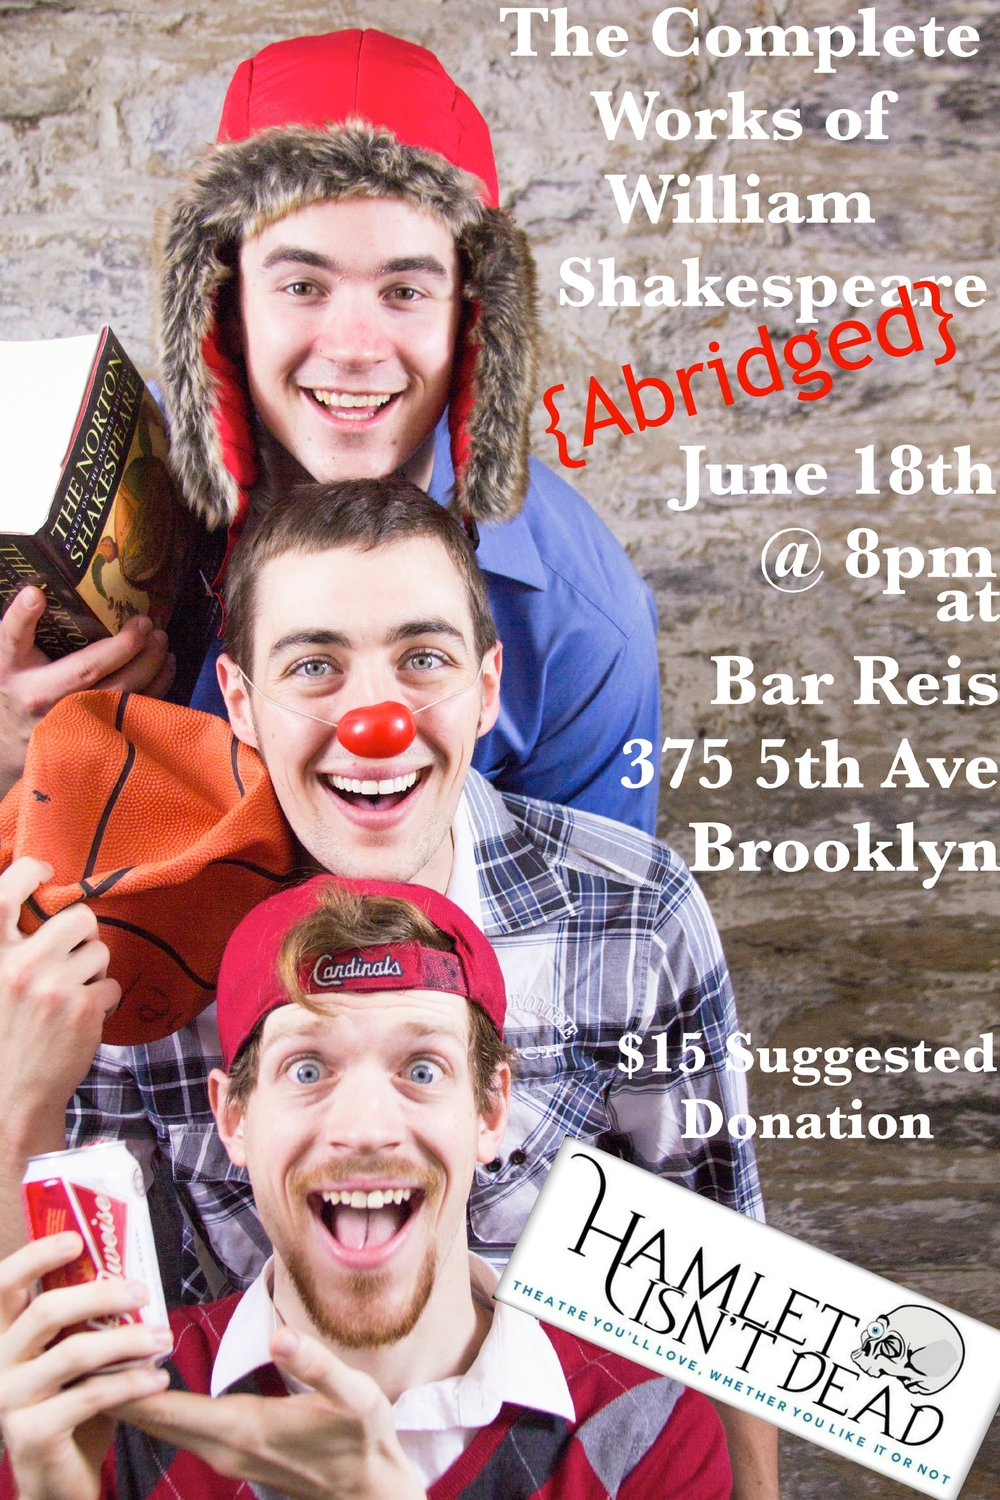 Promo for The Complete Works of William Shakespeare (Abridged) - 2014